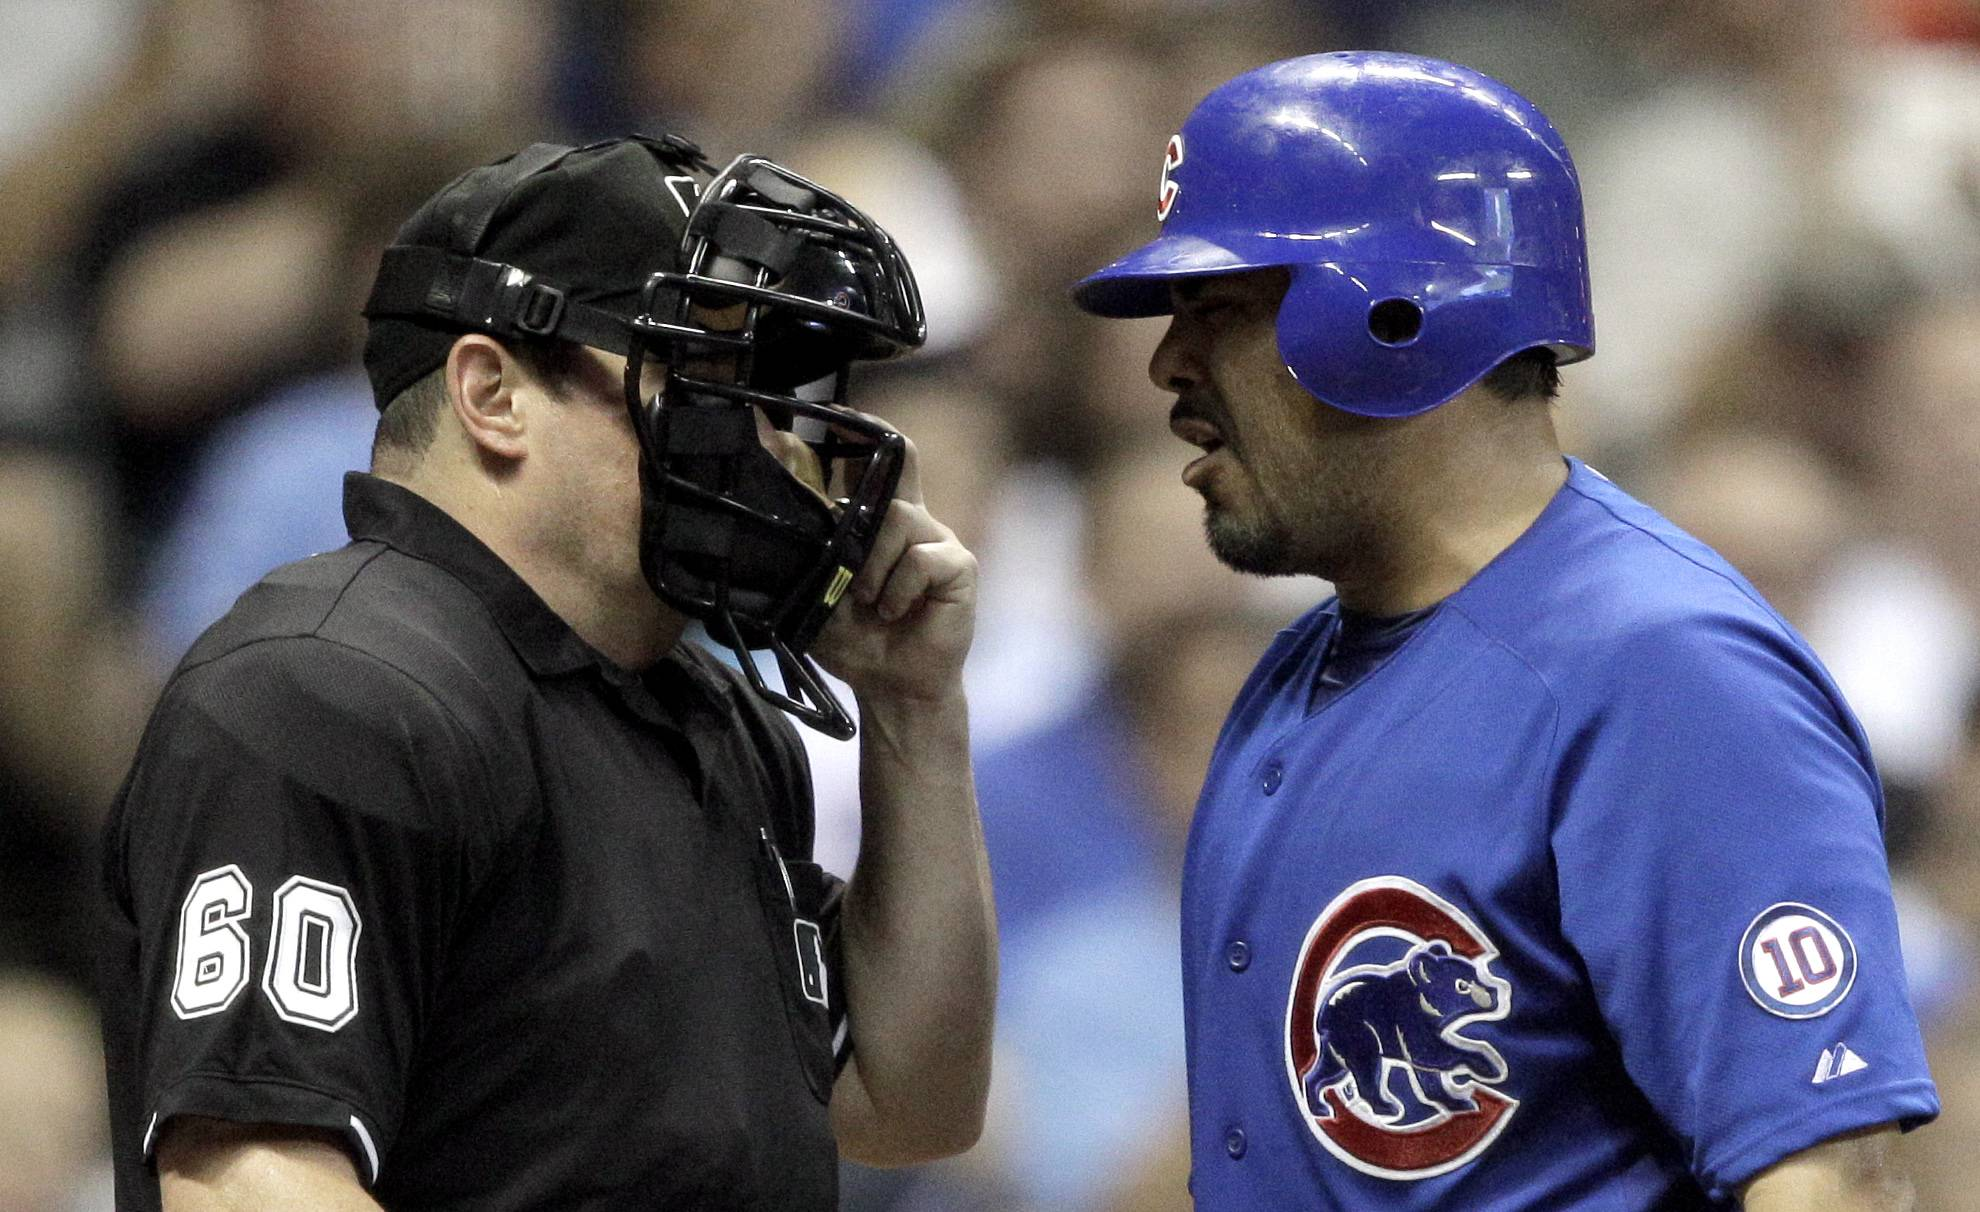 Geovany Soto argues with home plate umpire Marty Foster after a strike three call during the fourth inning Wednesday night in Milwaukee.